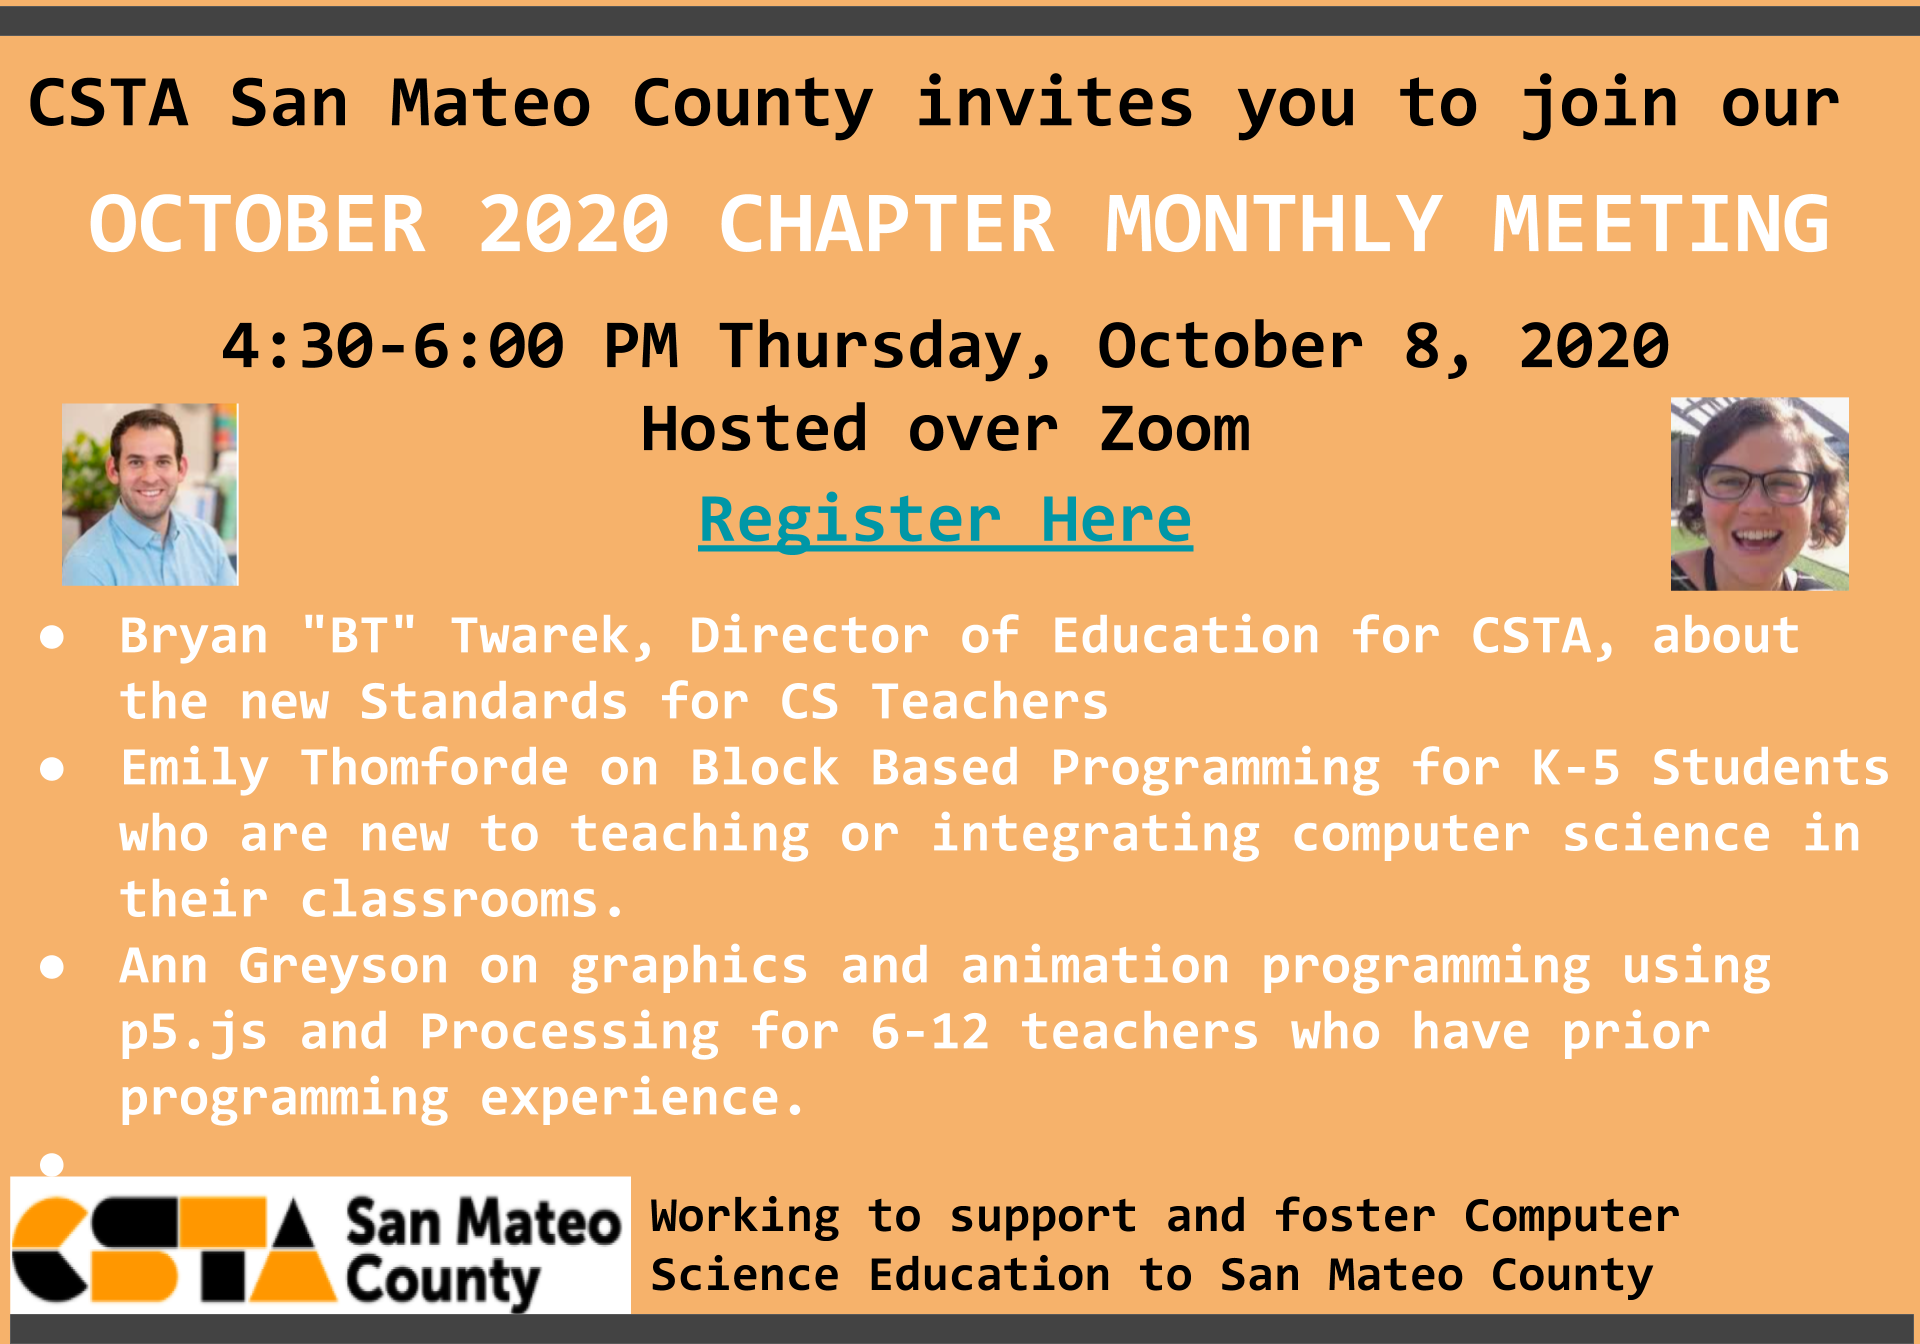 October 8 2020 : CSTA San Mateo County Chapter Monthly Meeting (CSTA San Mateo County (CA))